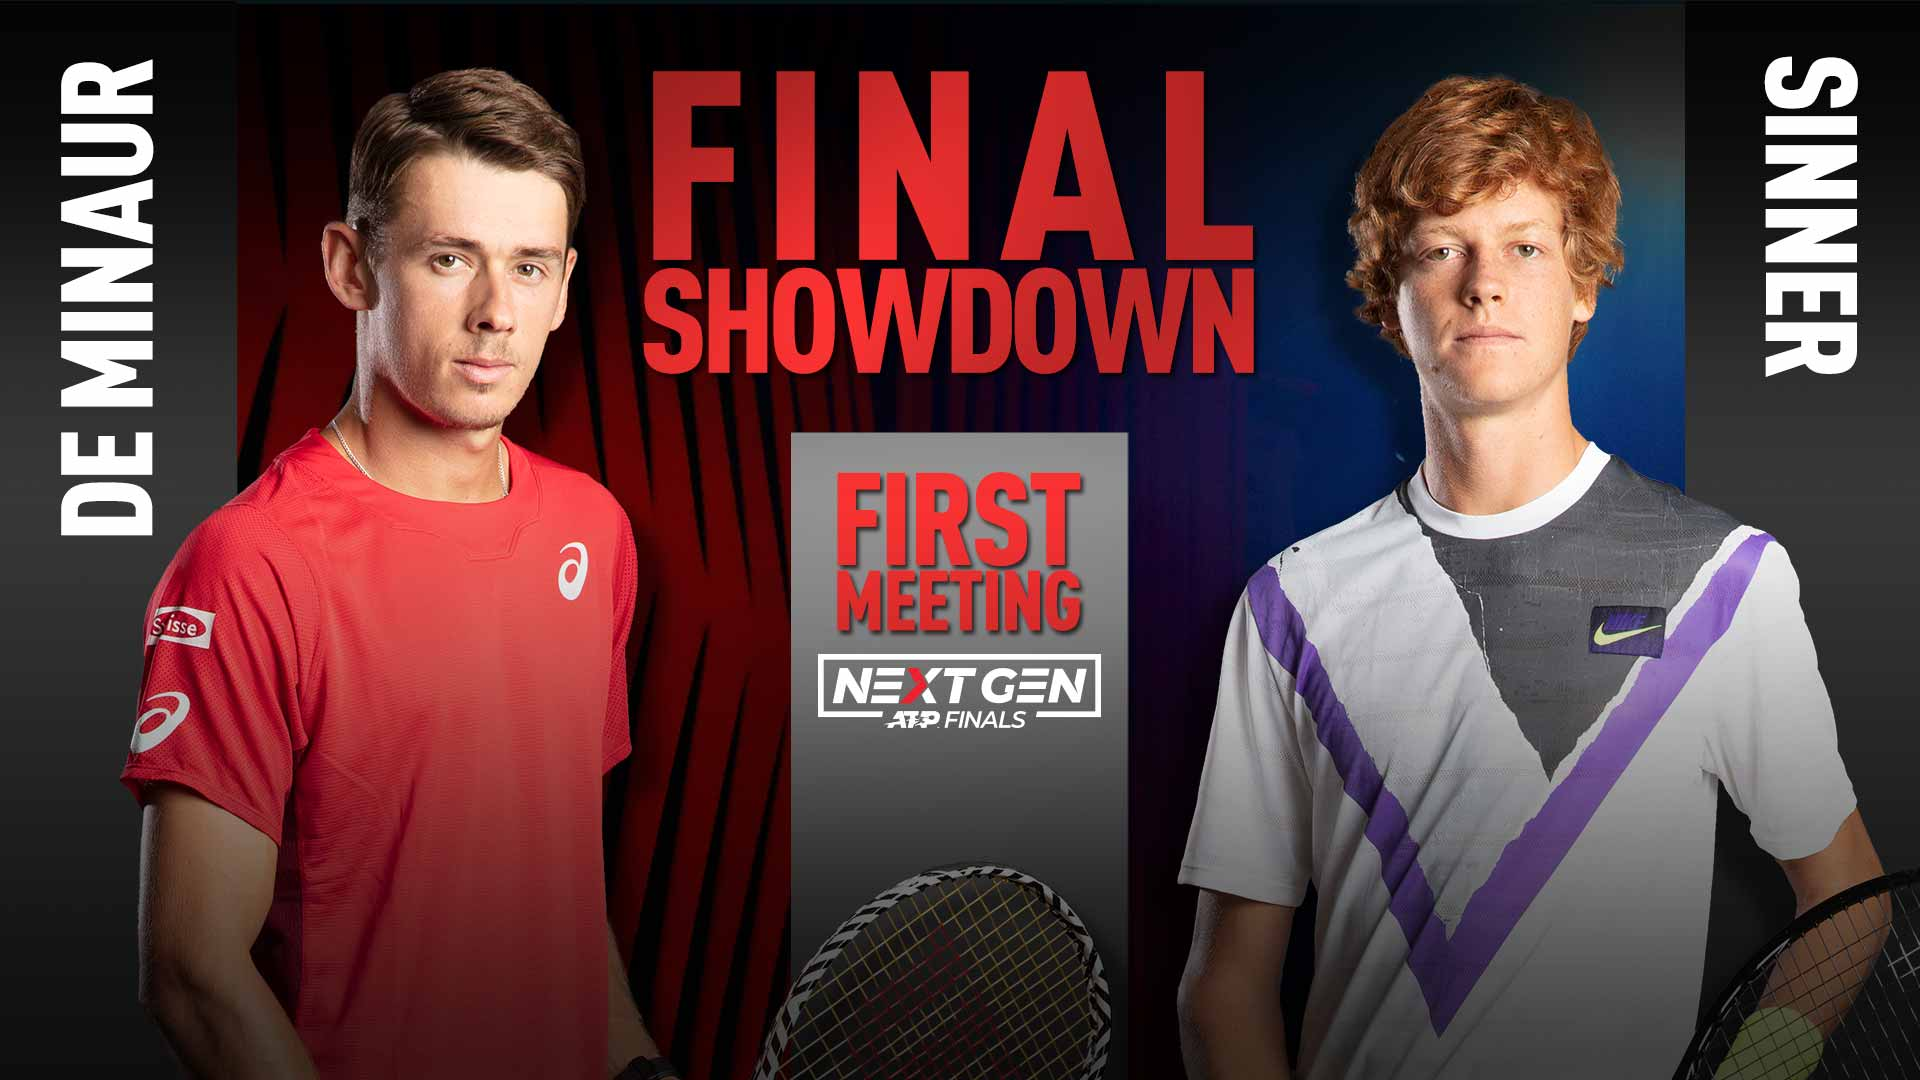 Alex de Minaur faces Jannik Sinner in the Next Gen ATP Finals title match on Saturday night.